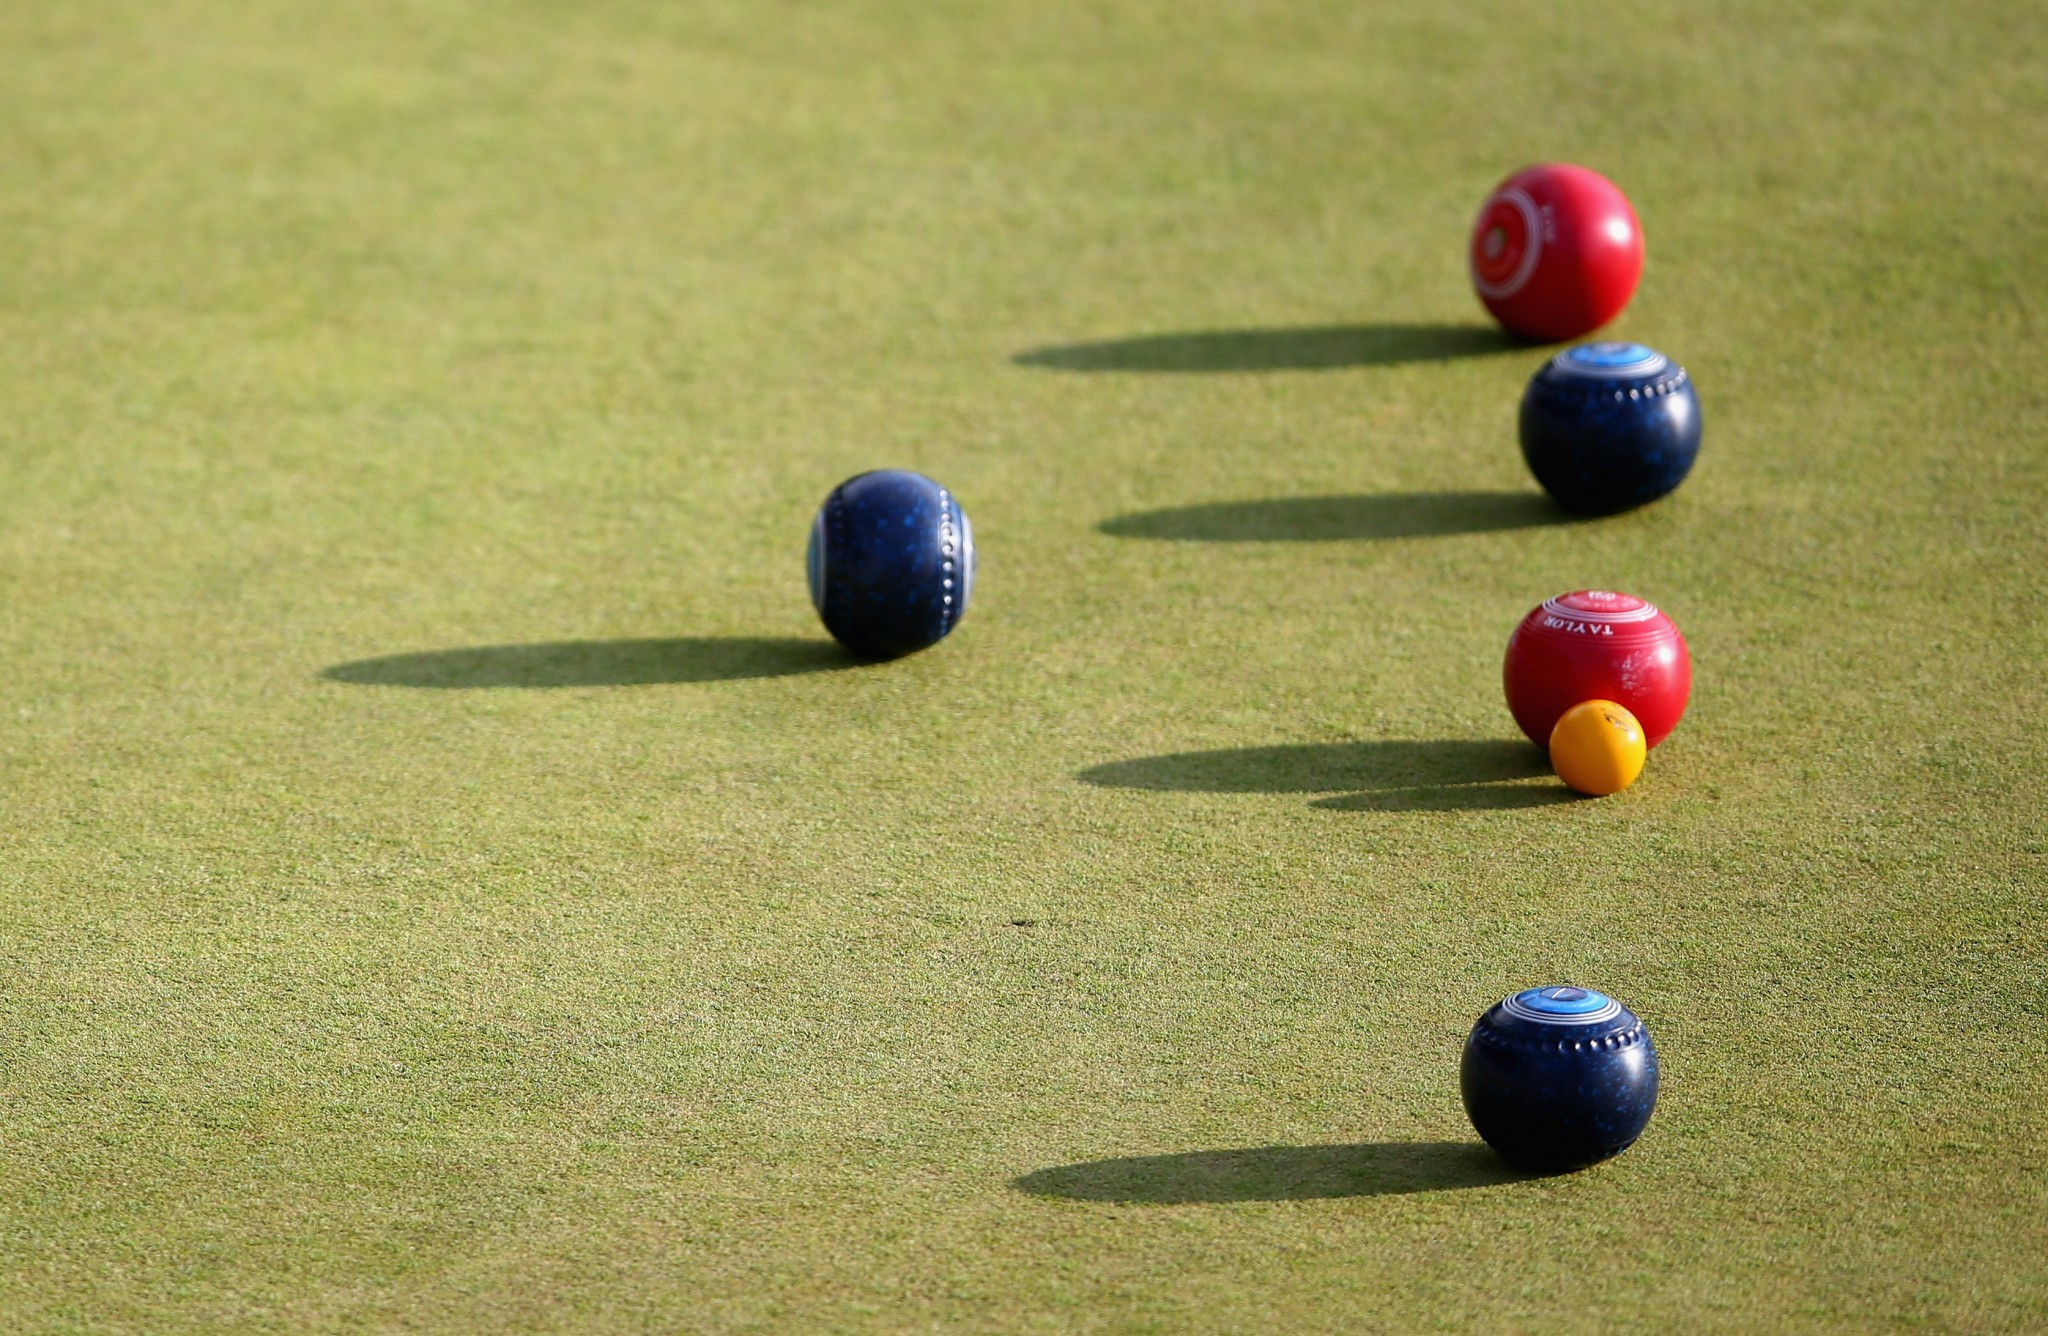 The event is one of the most prestigious on the lawn bowls calendar ©Getty Images